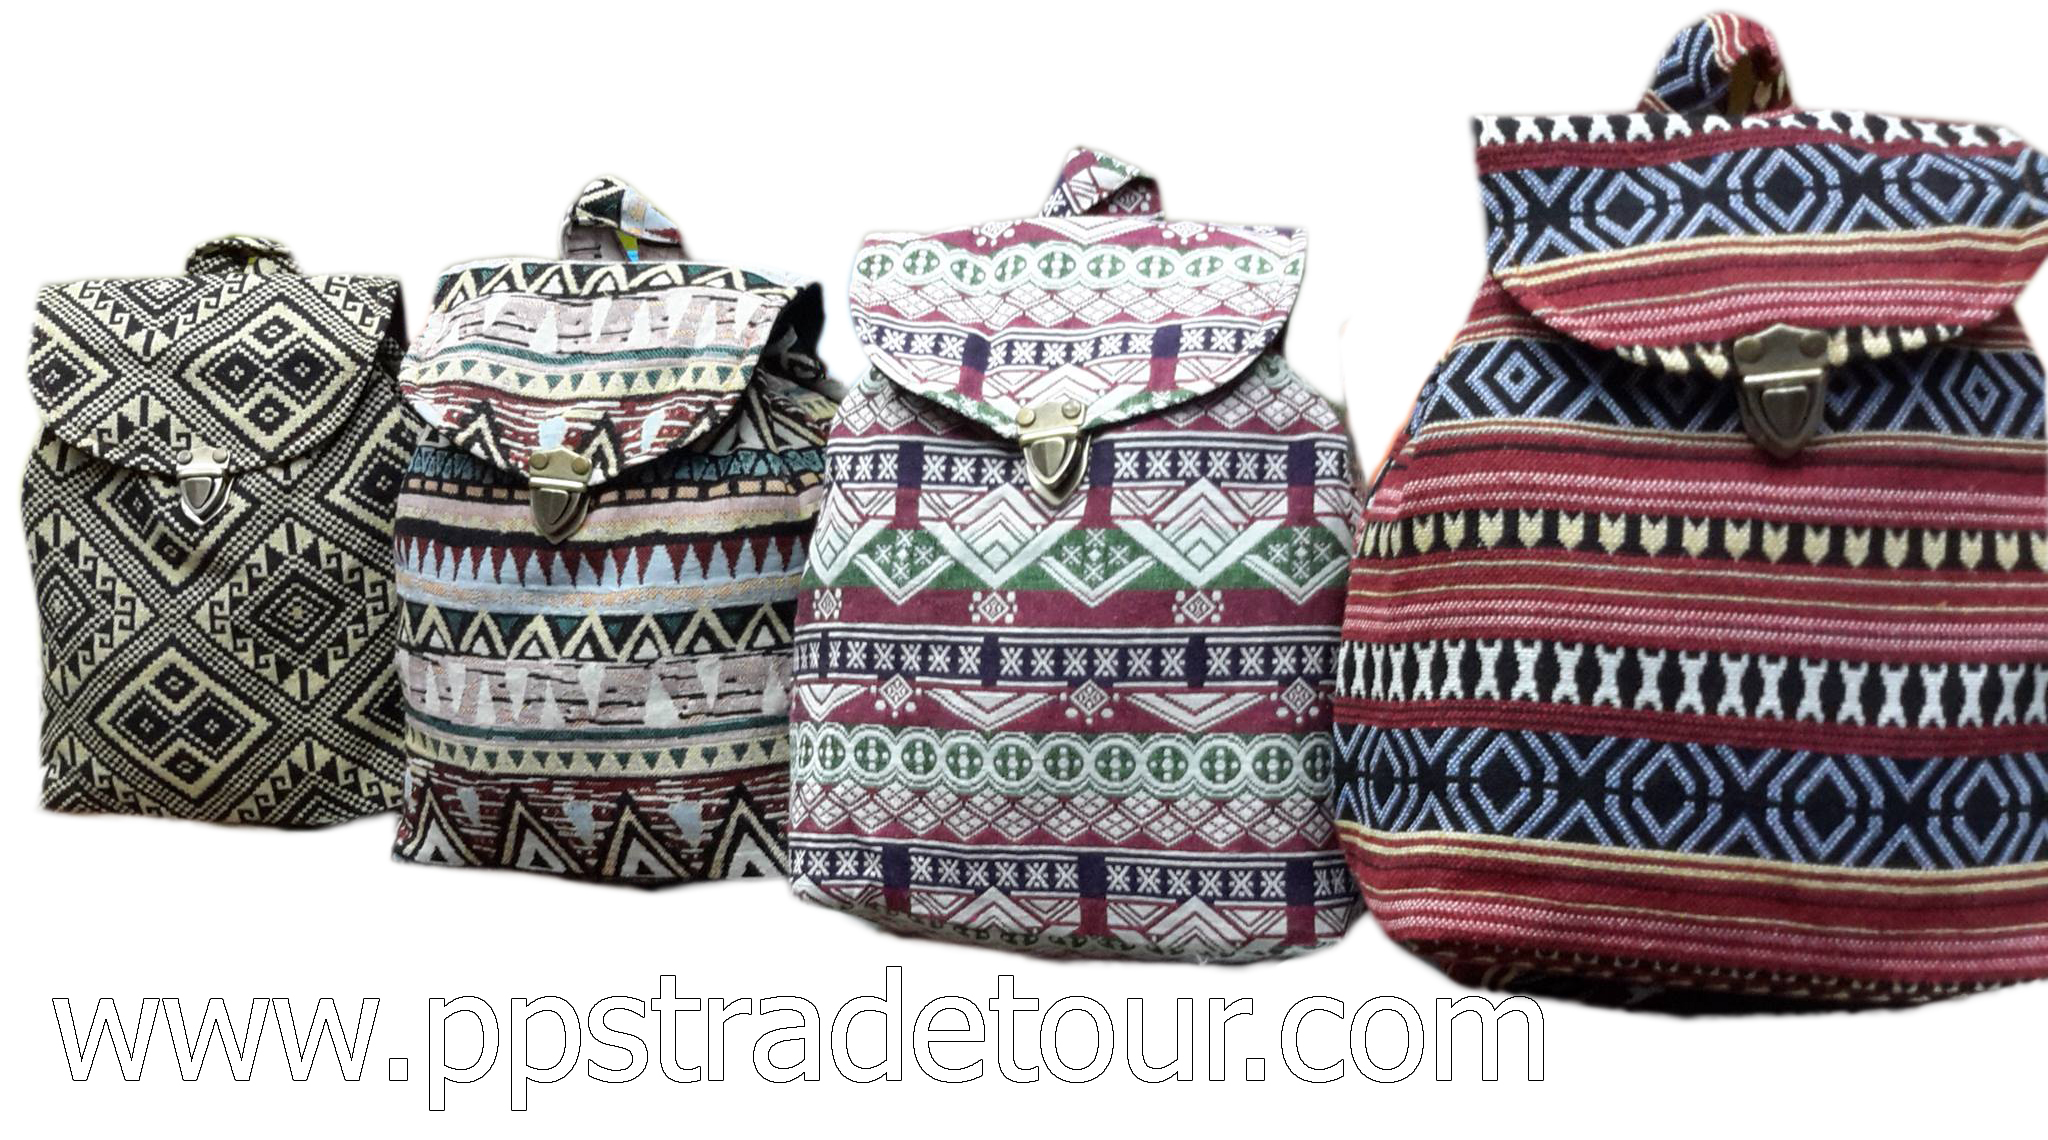 PPS-CottonBagPack1